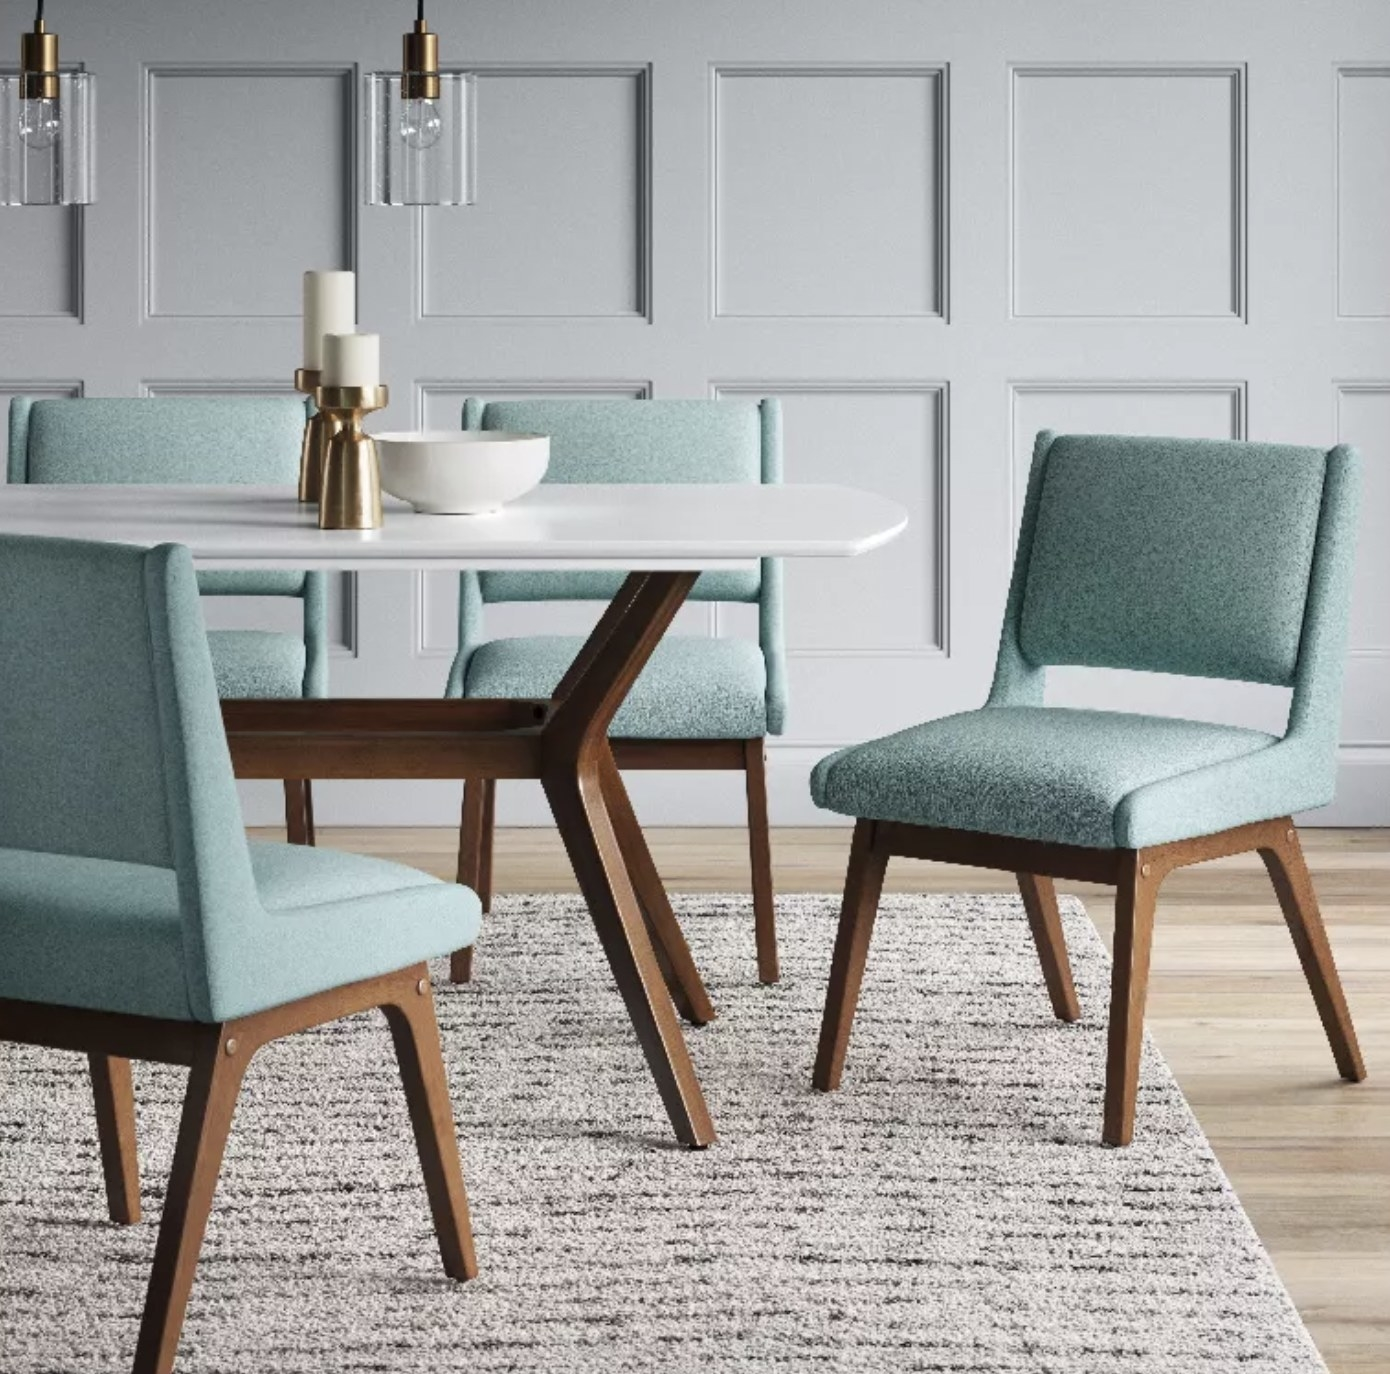 a teal upholstered dining chair with a backrest and tan wooden legs